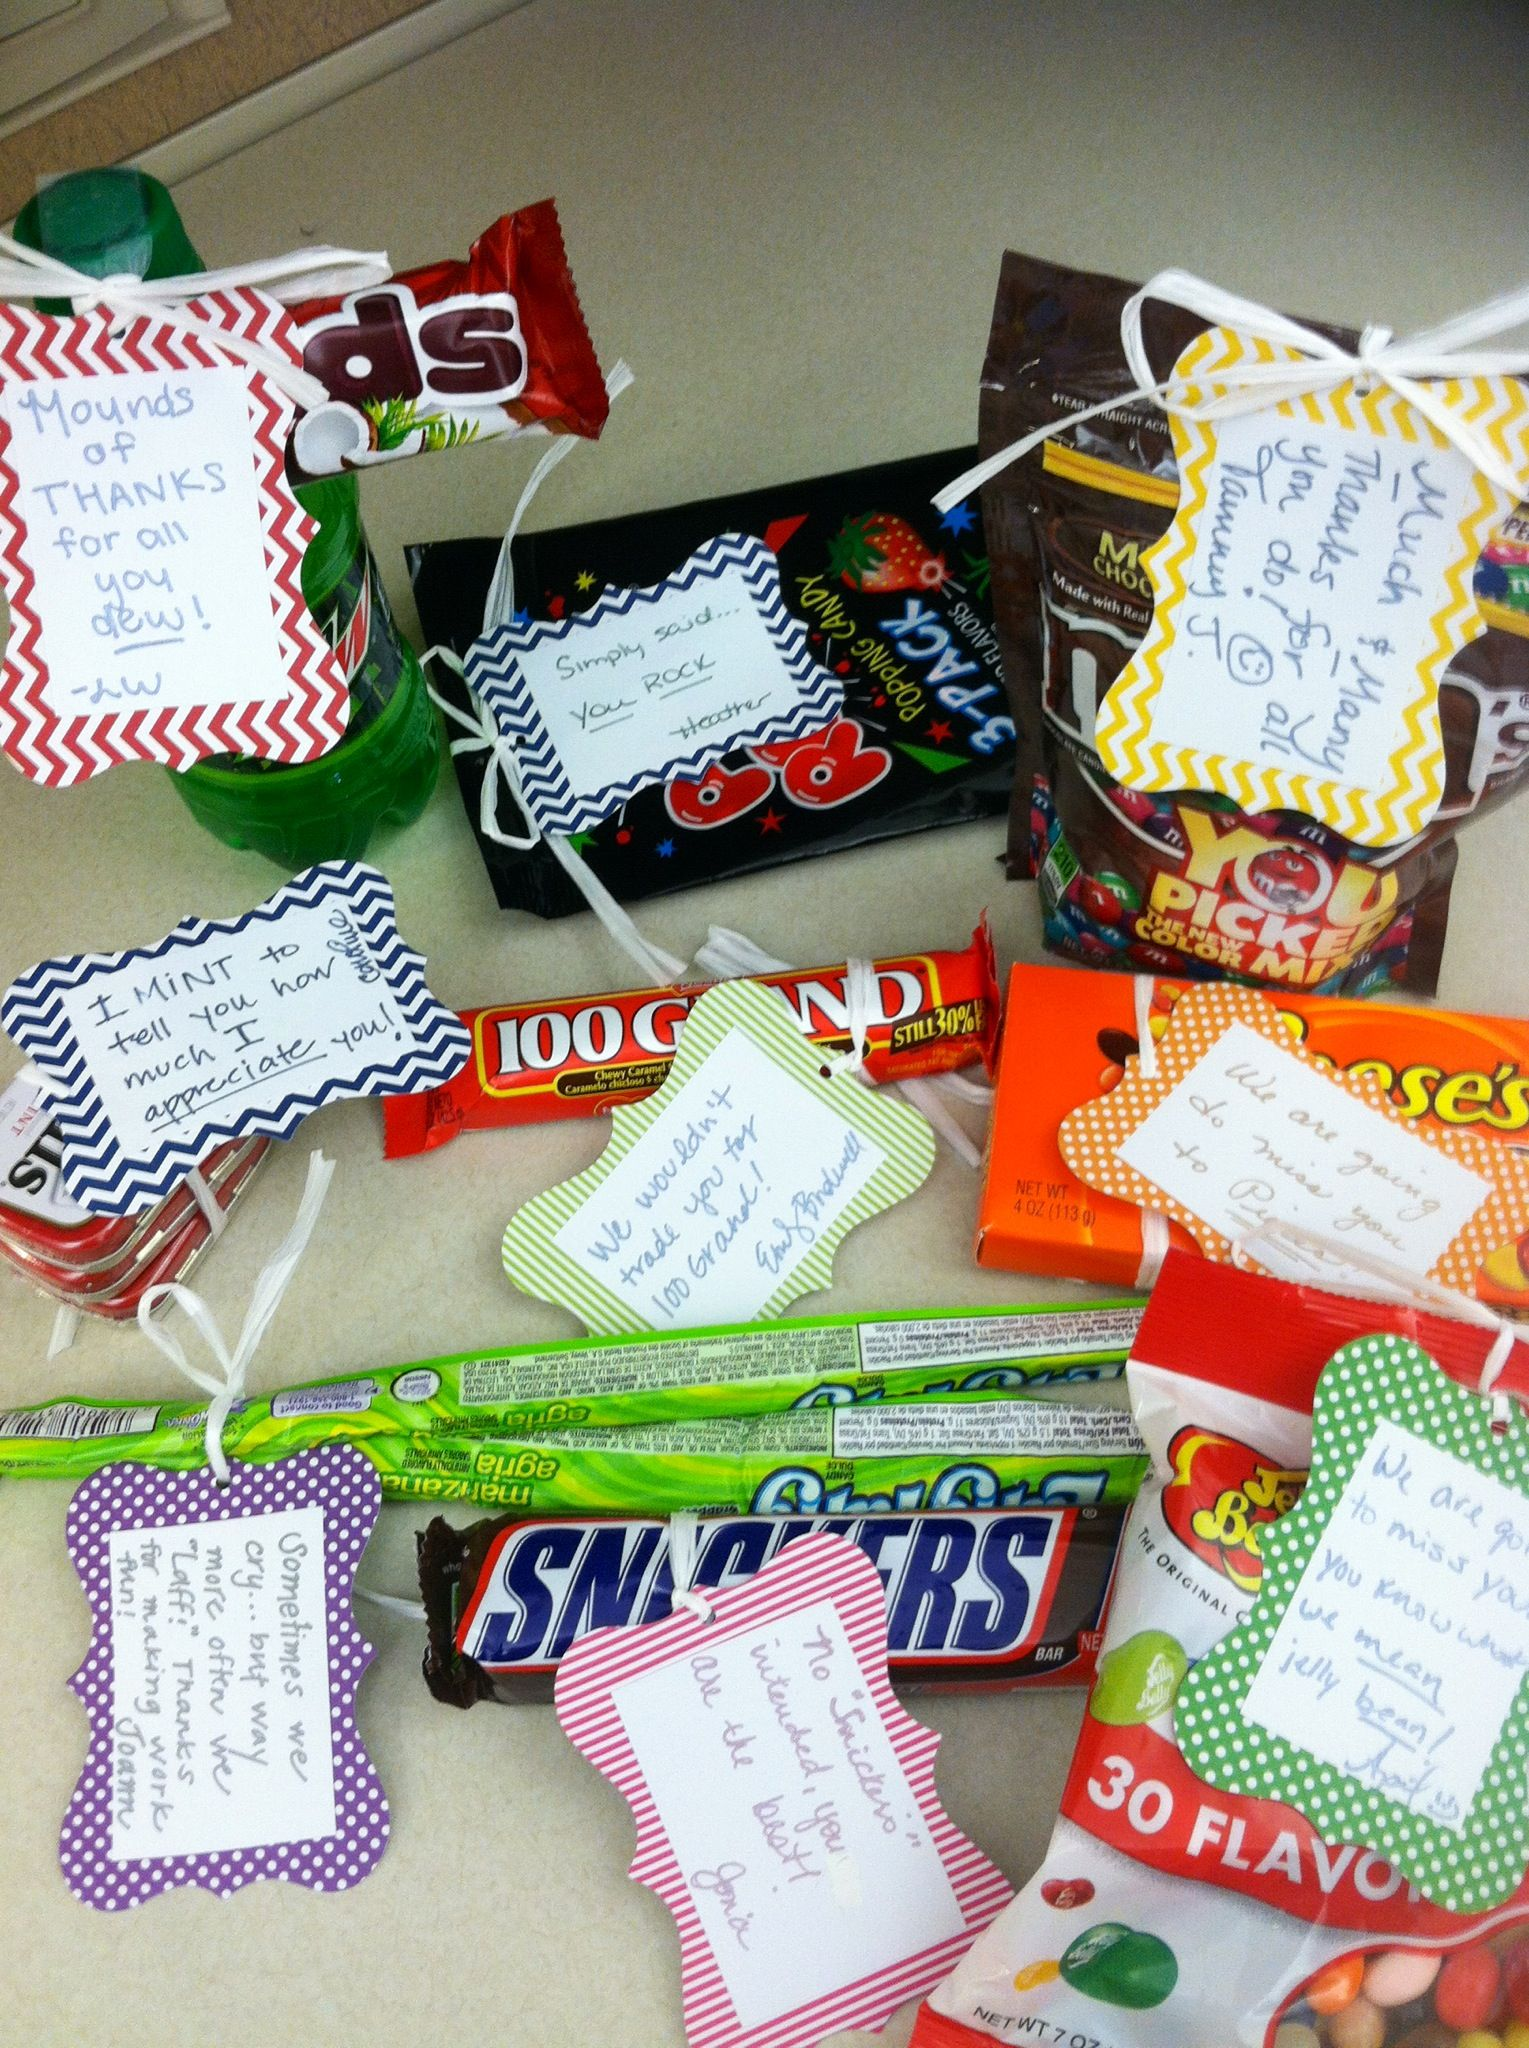 Candy sayings we gave to our boss ) Candy quotes